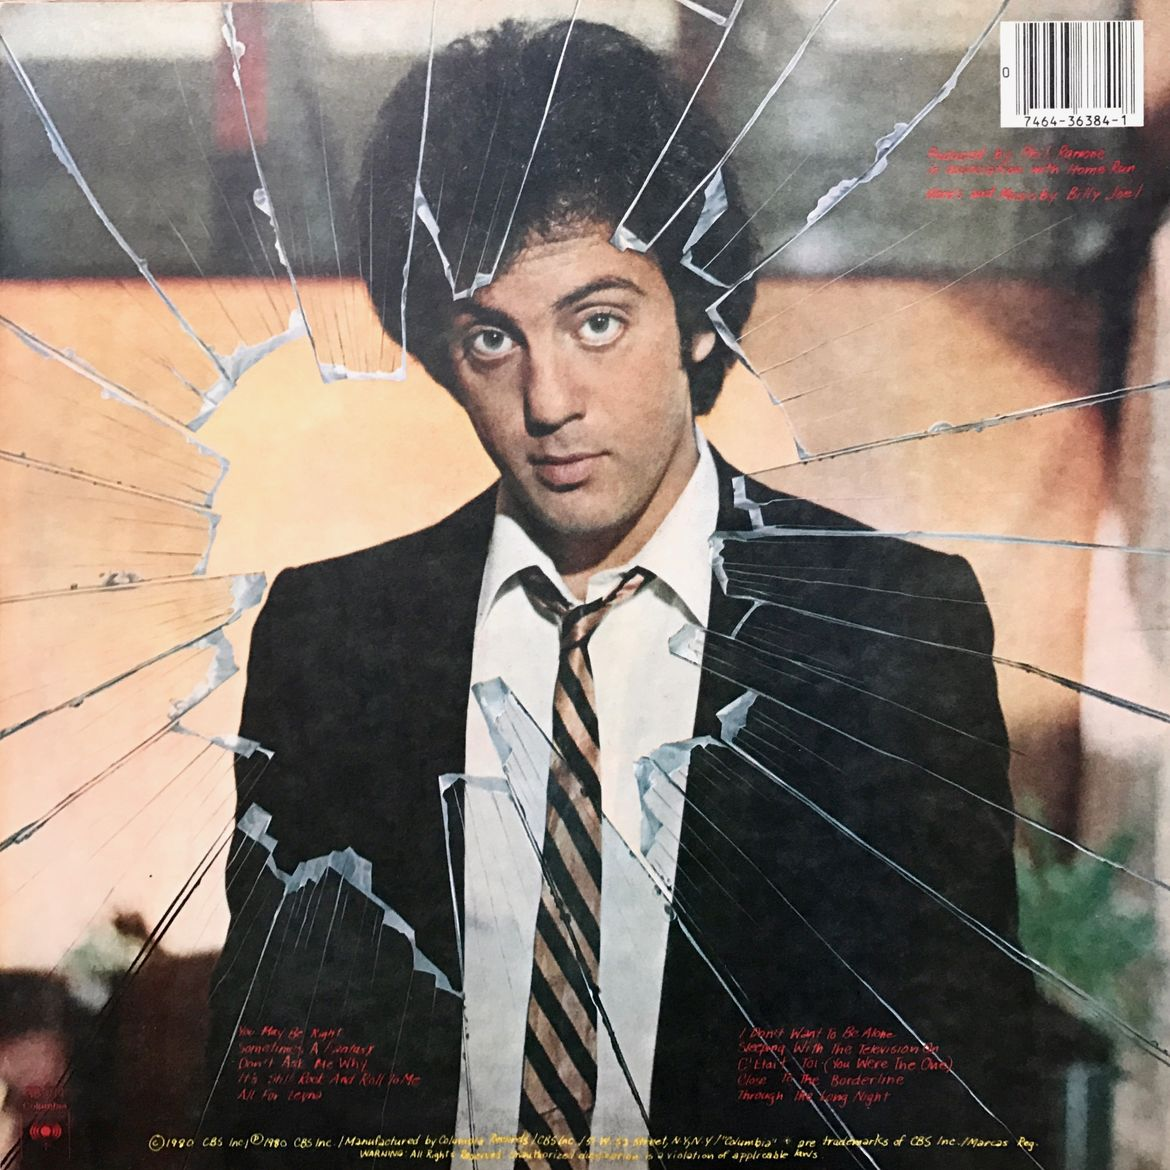 Cover Photo: Let Me Do My Show: My Life with Billy Joel by J. Robert Lennon